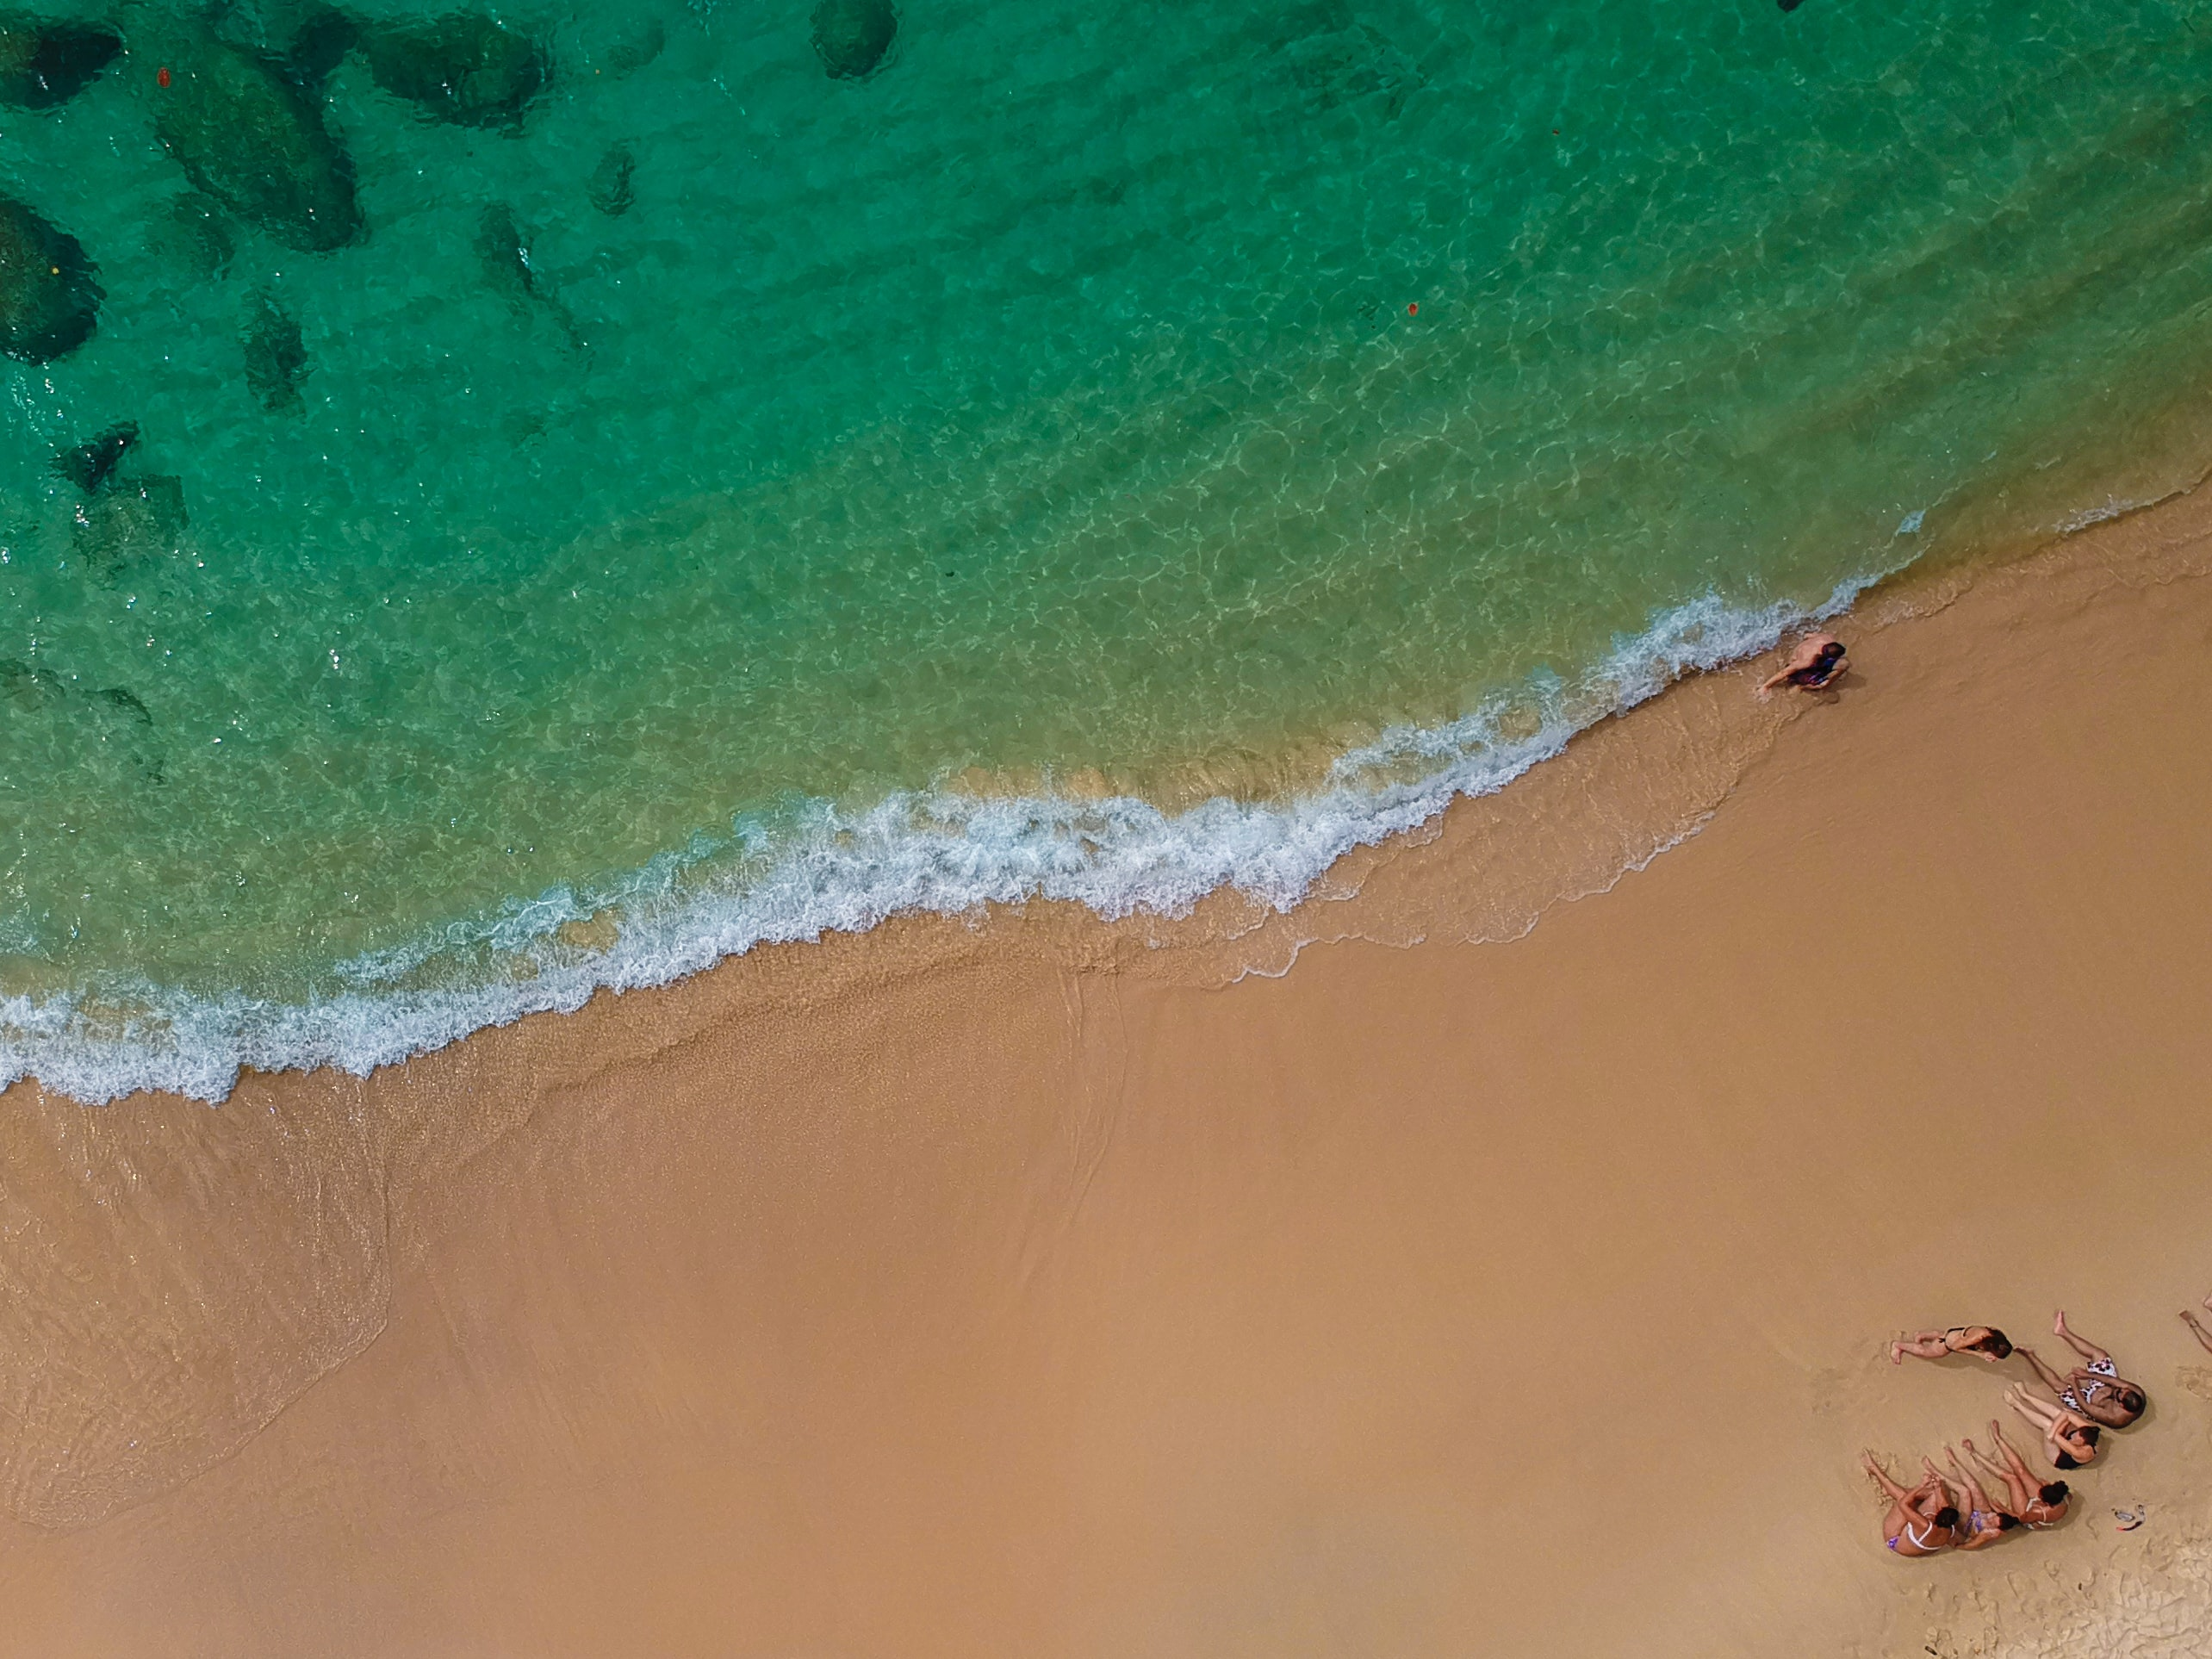 top view of people sitting on beach shore during daytrime